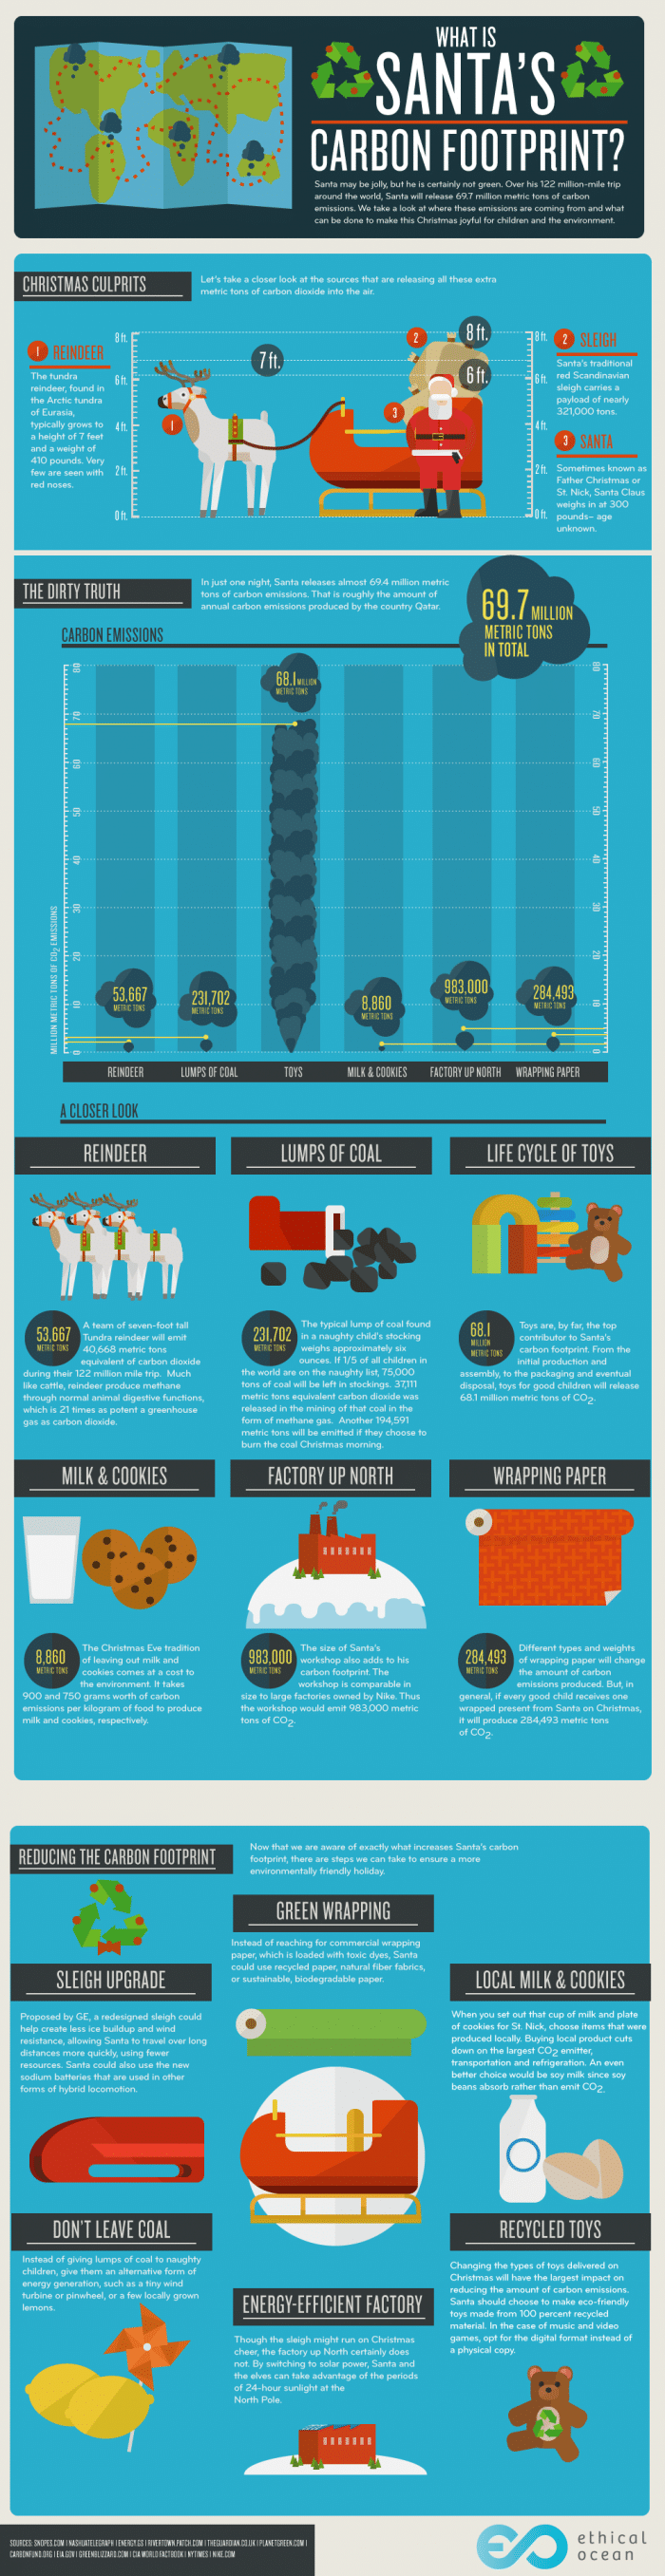 carbon-footprint-santa-infographic-700x2713